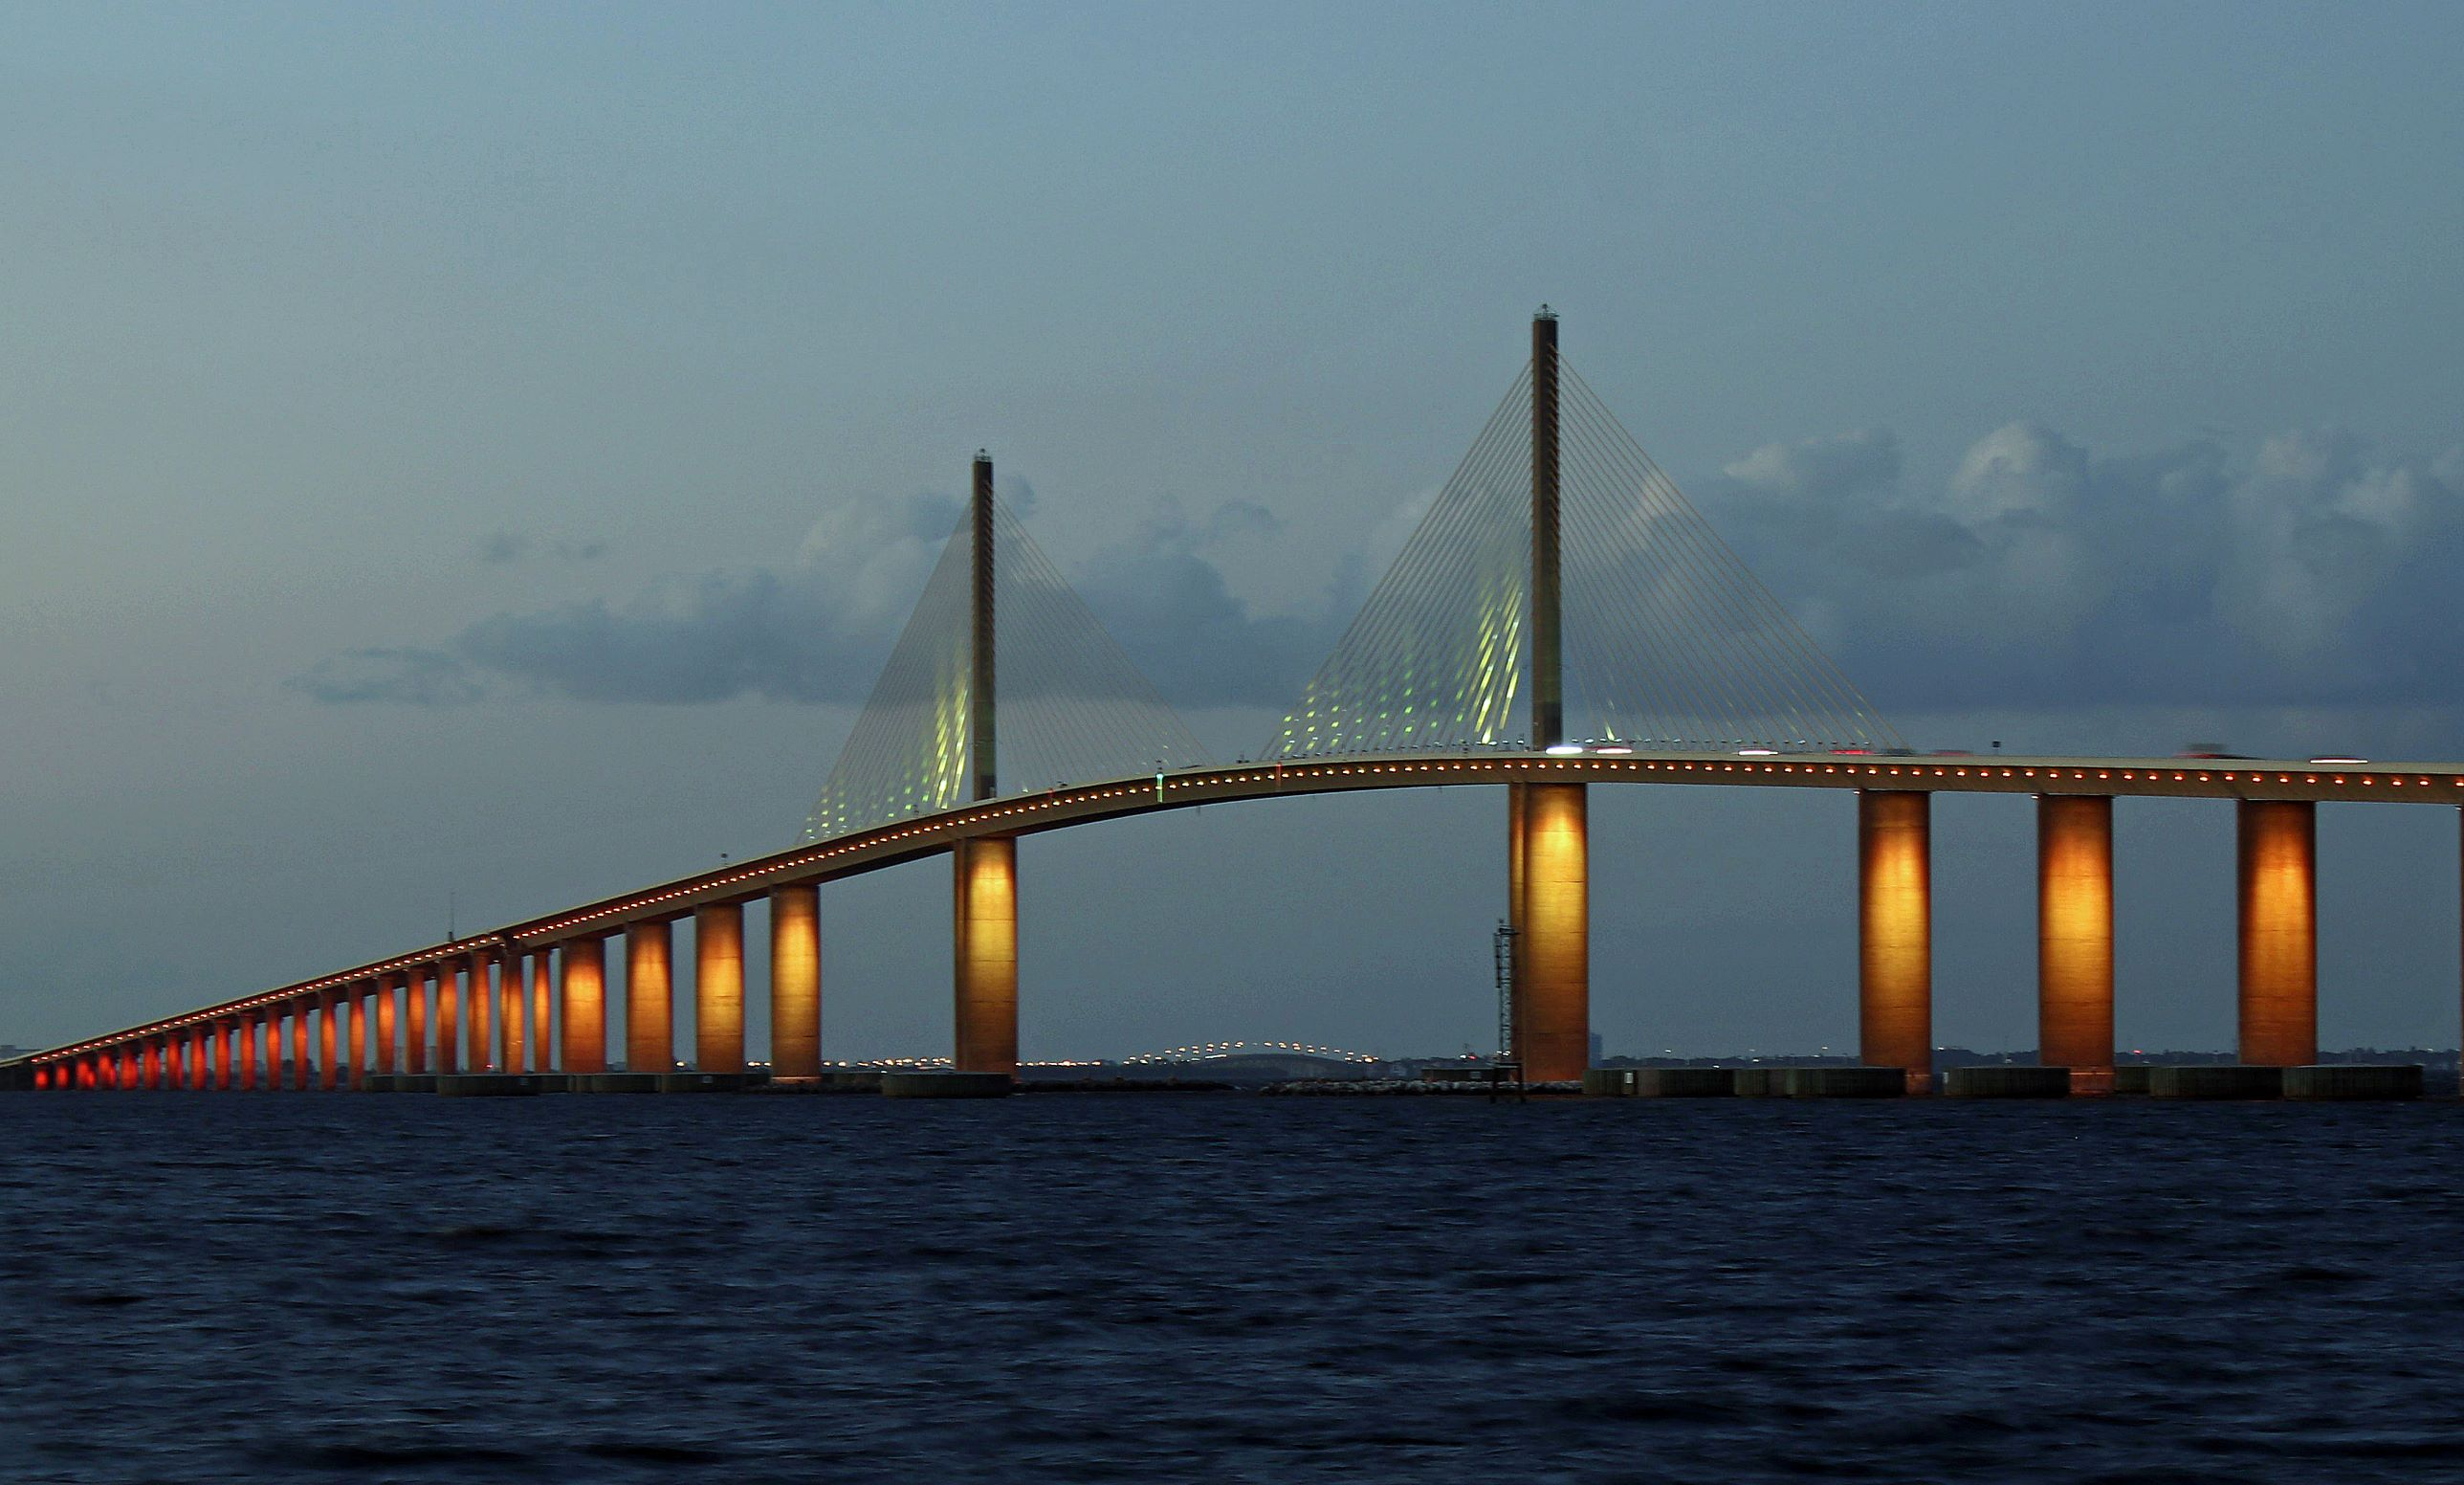 skyway bridge 196 (2)pp.jpg